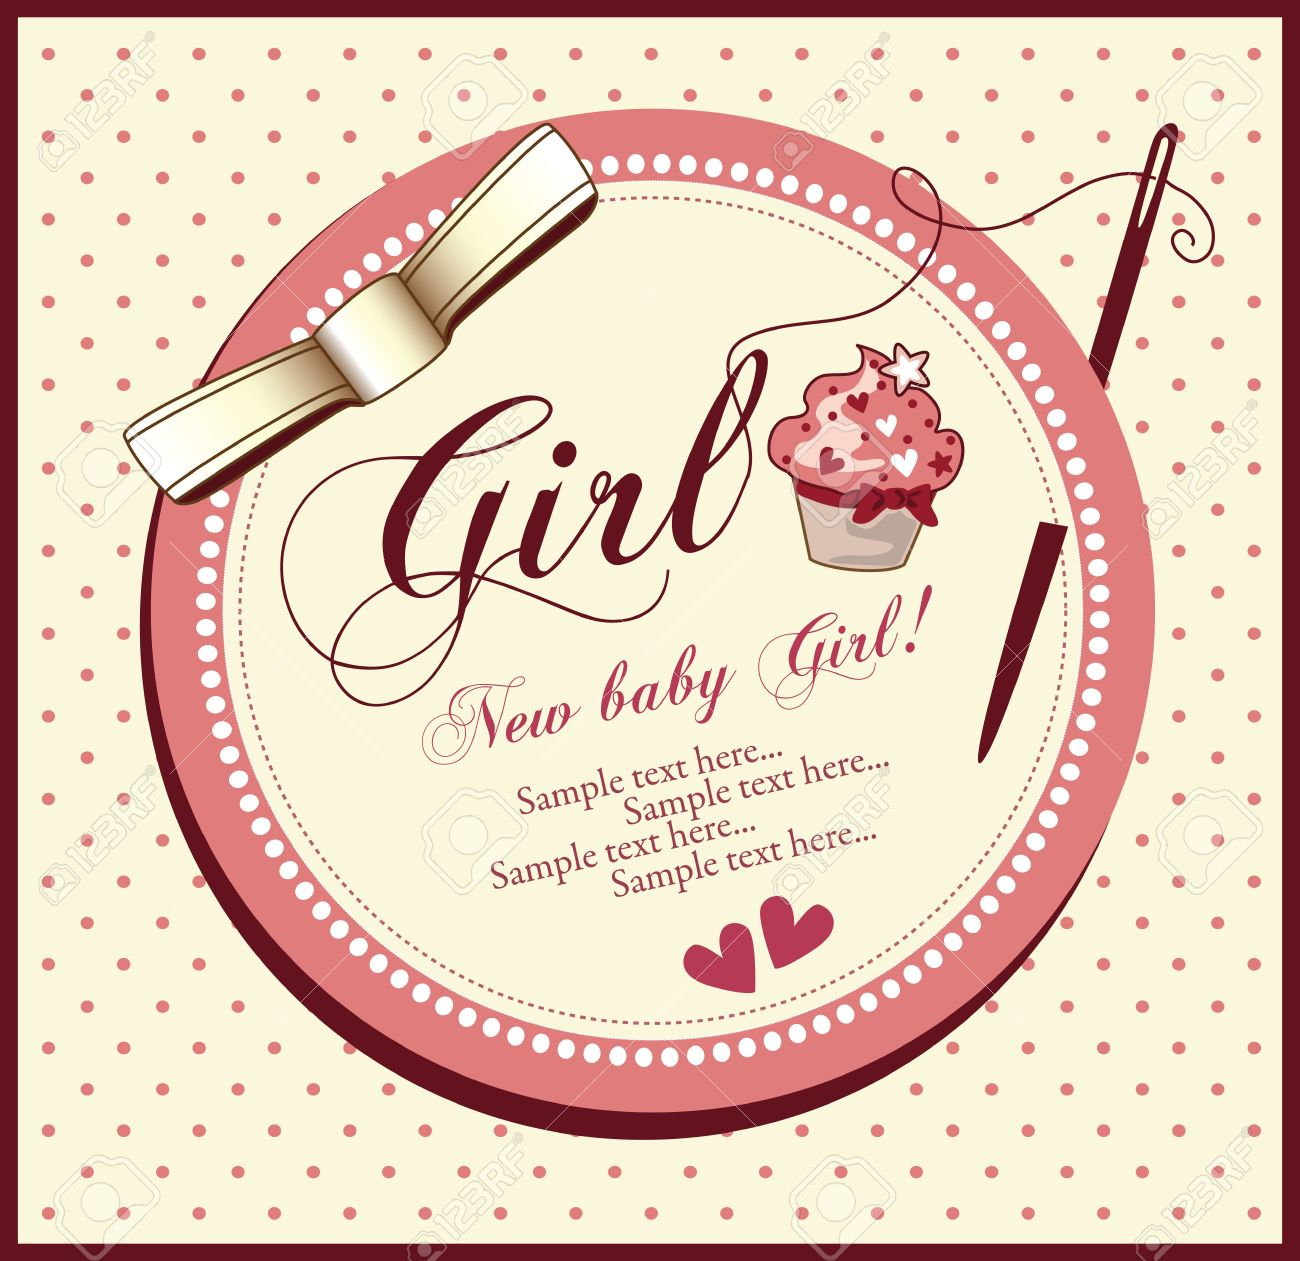 vector baby shower card girl royalty free cliparts, vectors, and, Baby shower invitation